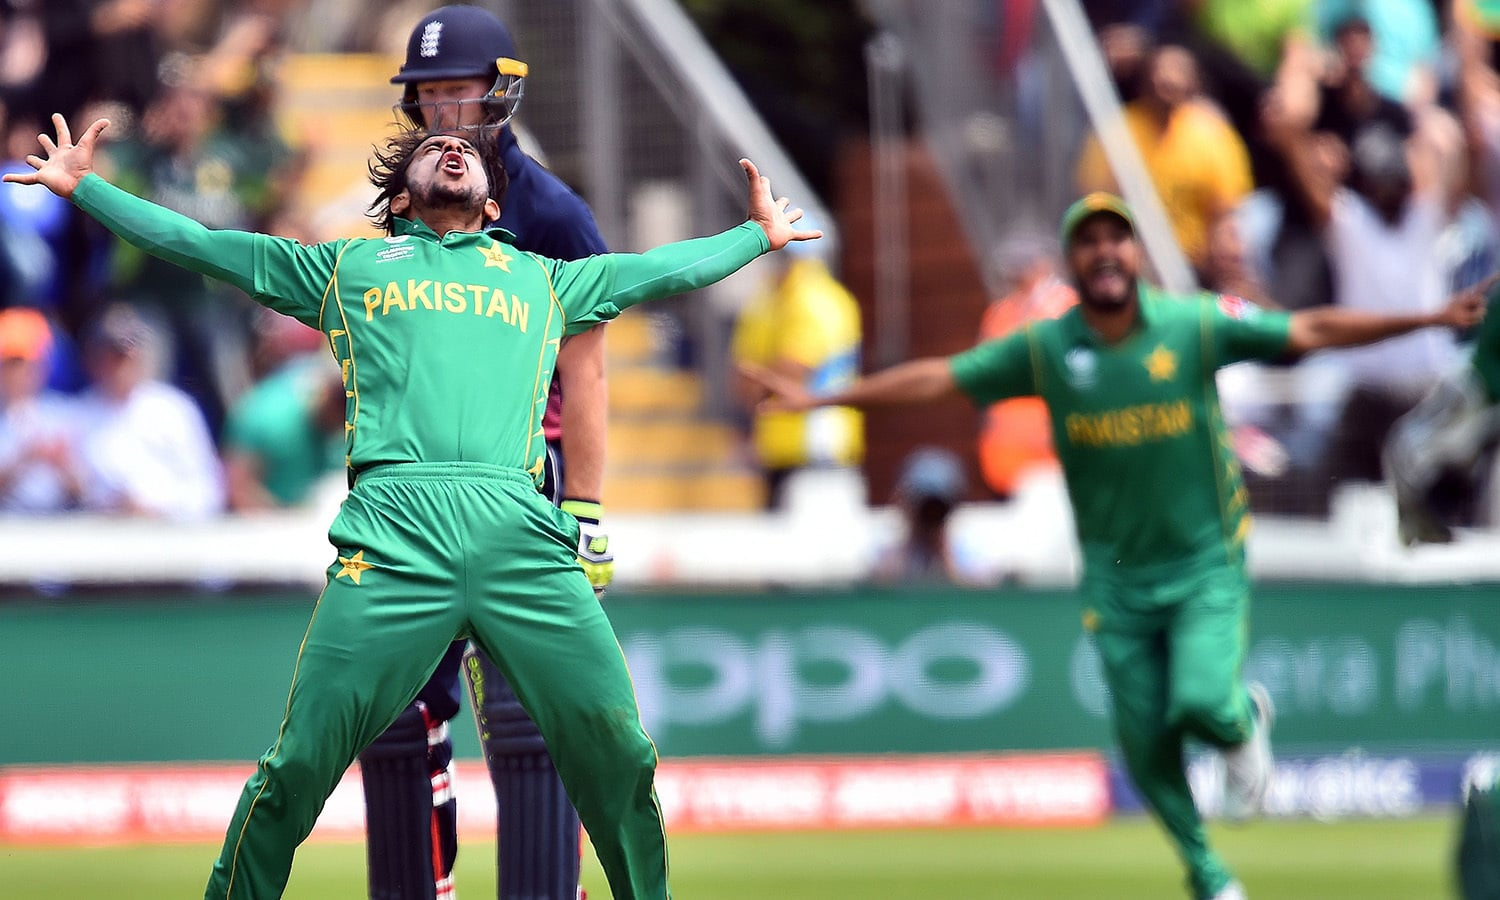 Hasan Ali celebrates taking the wicket of England's Eoin Morgan for 33 runs during the semi-final match.— AFP